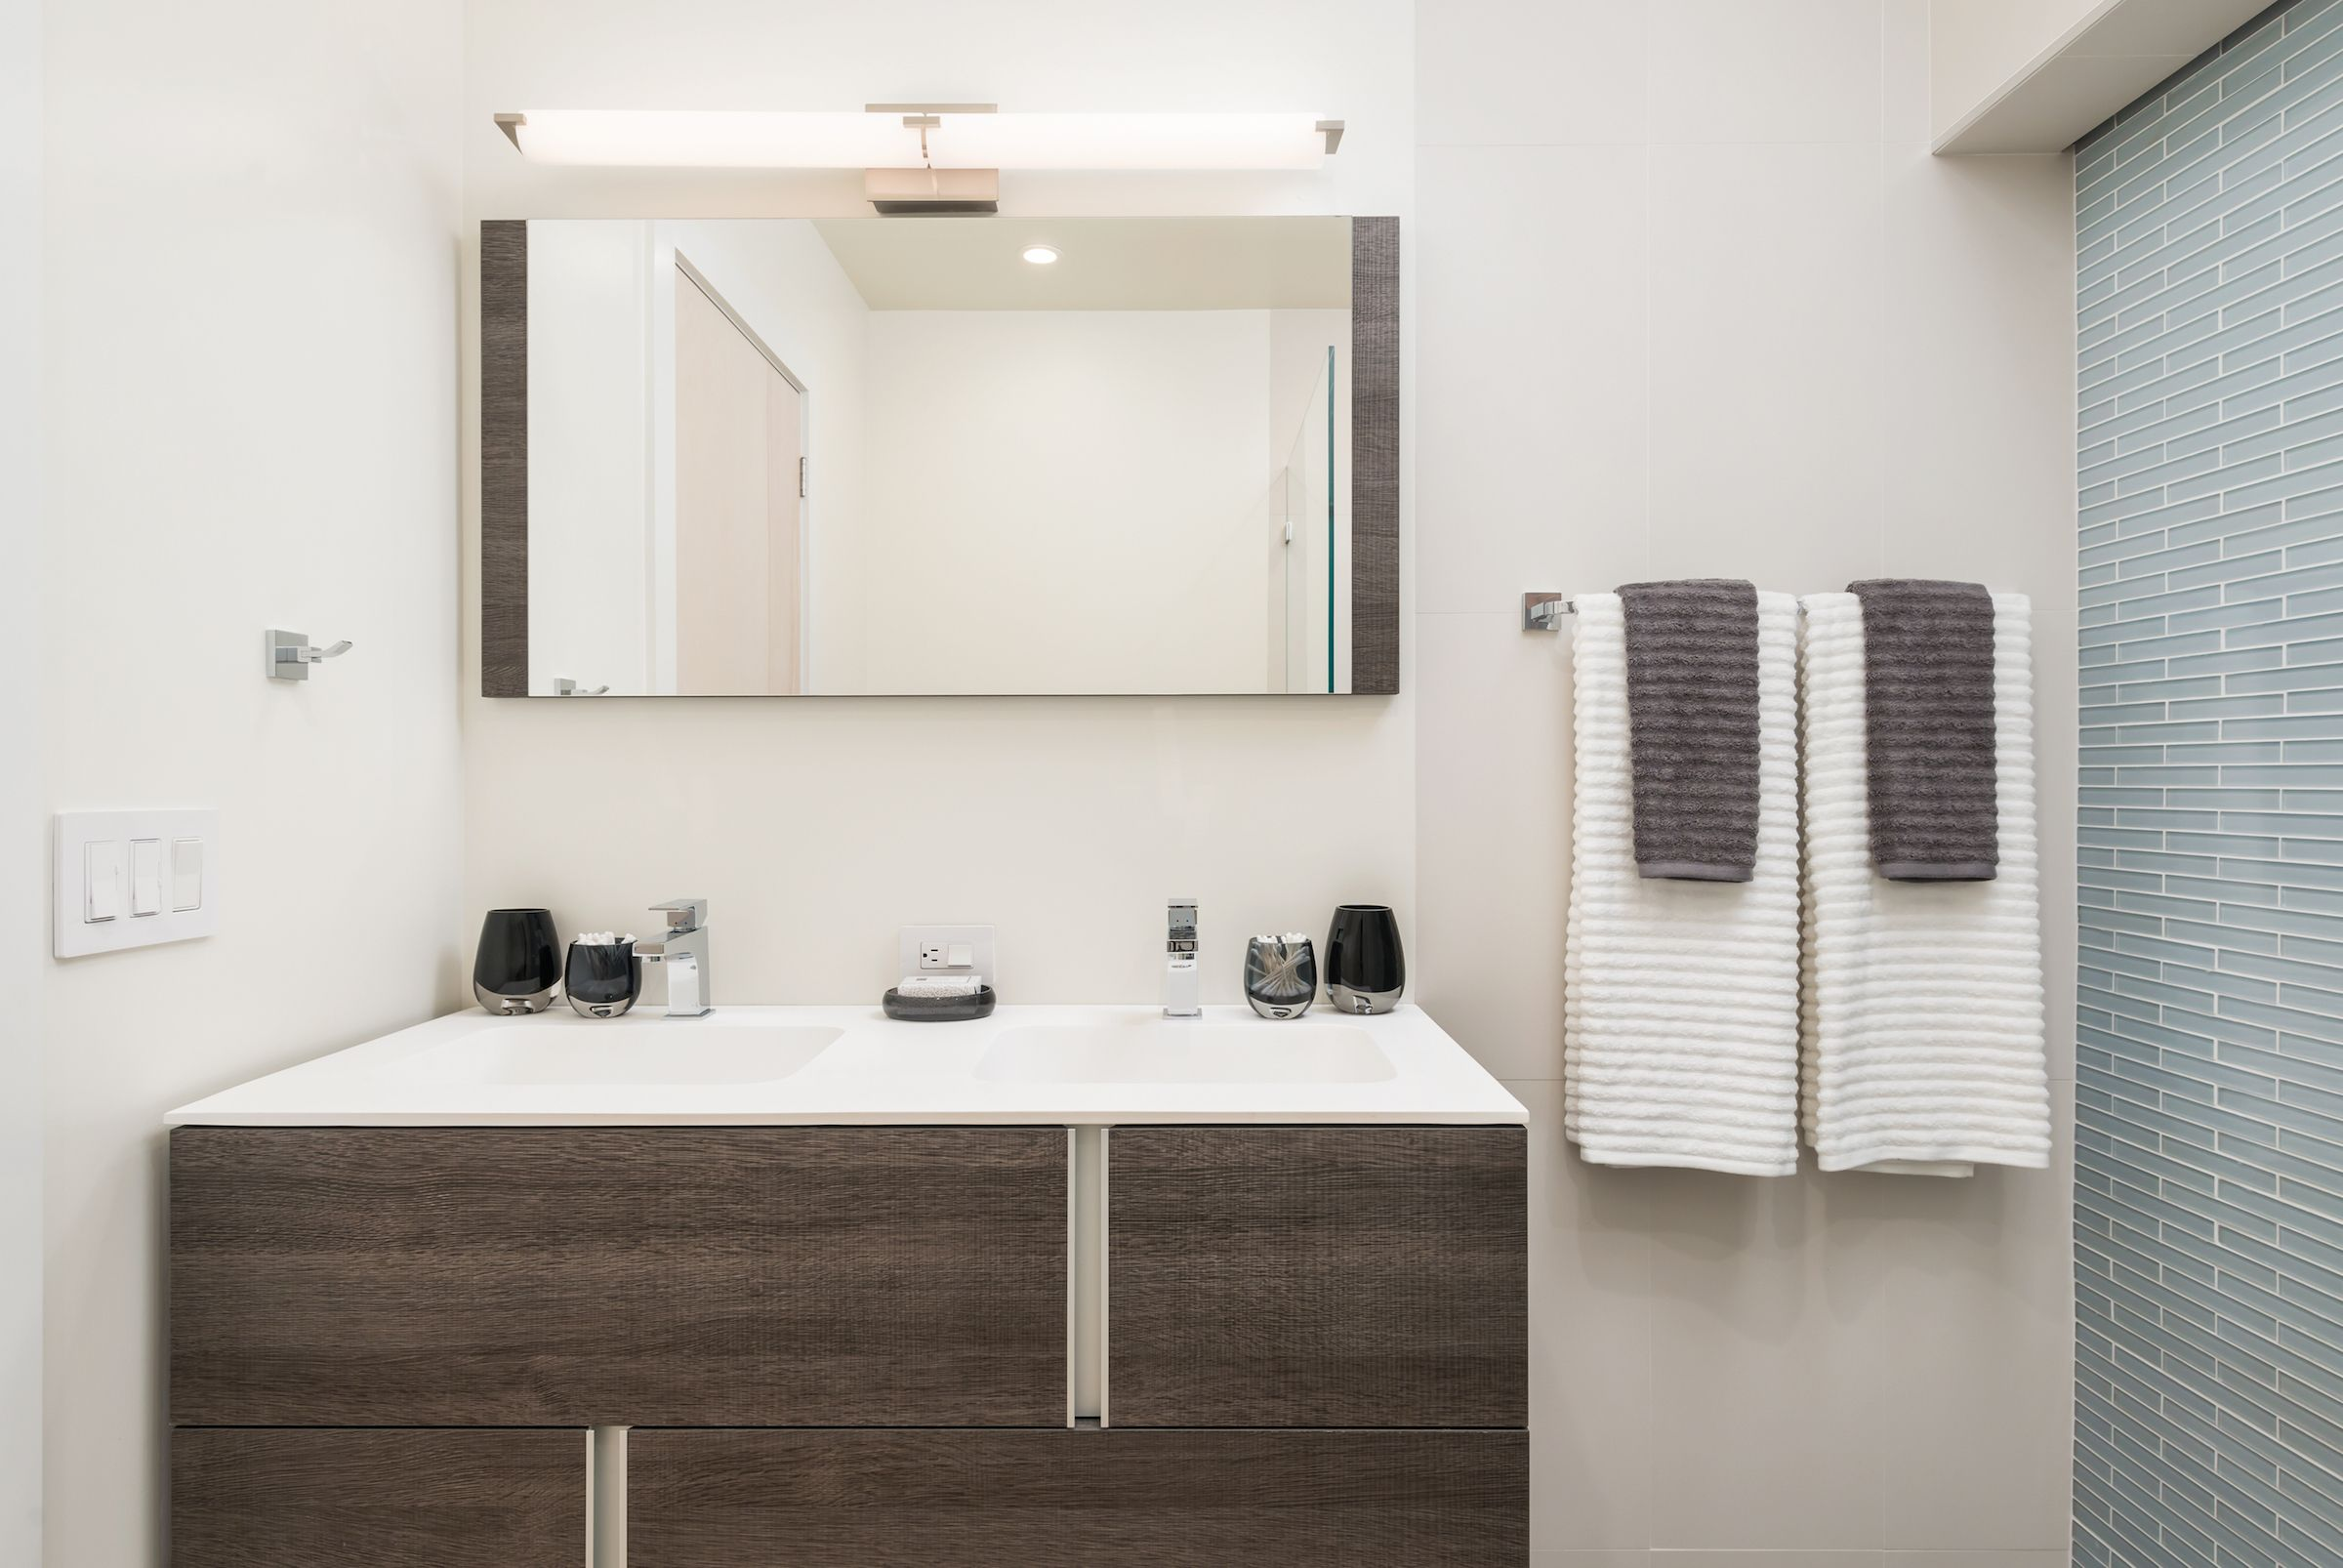 House Tour: A New Day | Horizontal mirrors, House tours and Bath light